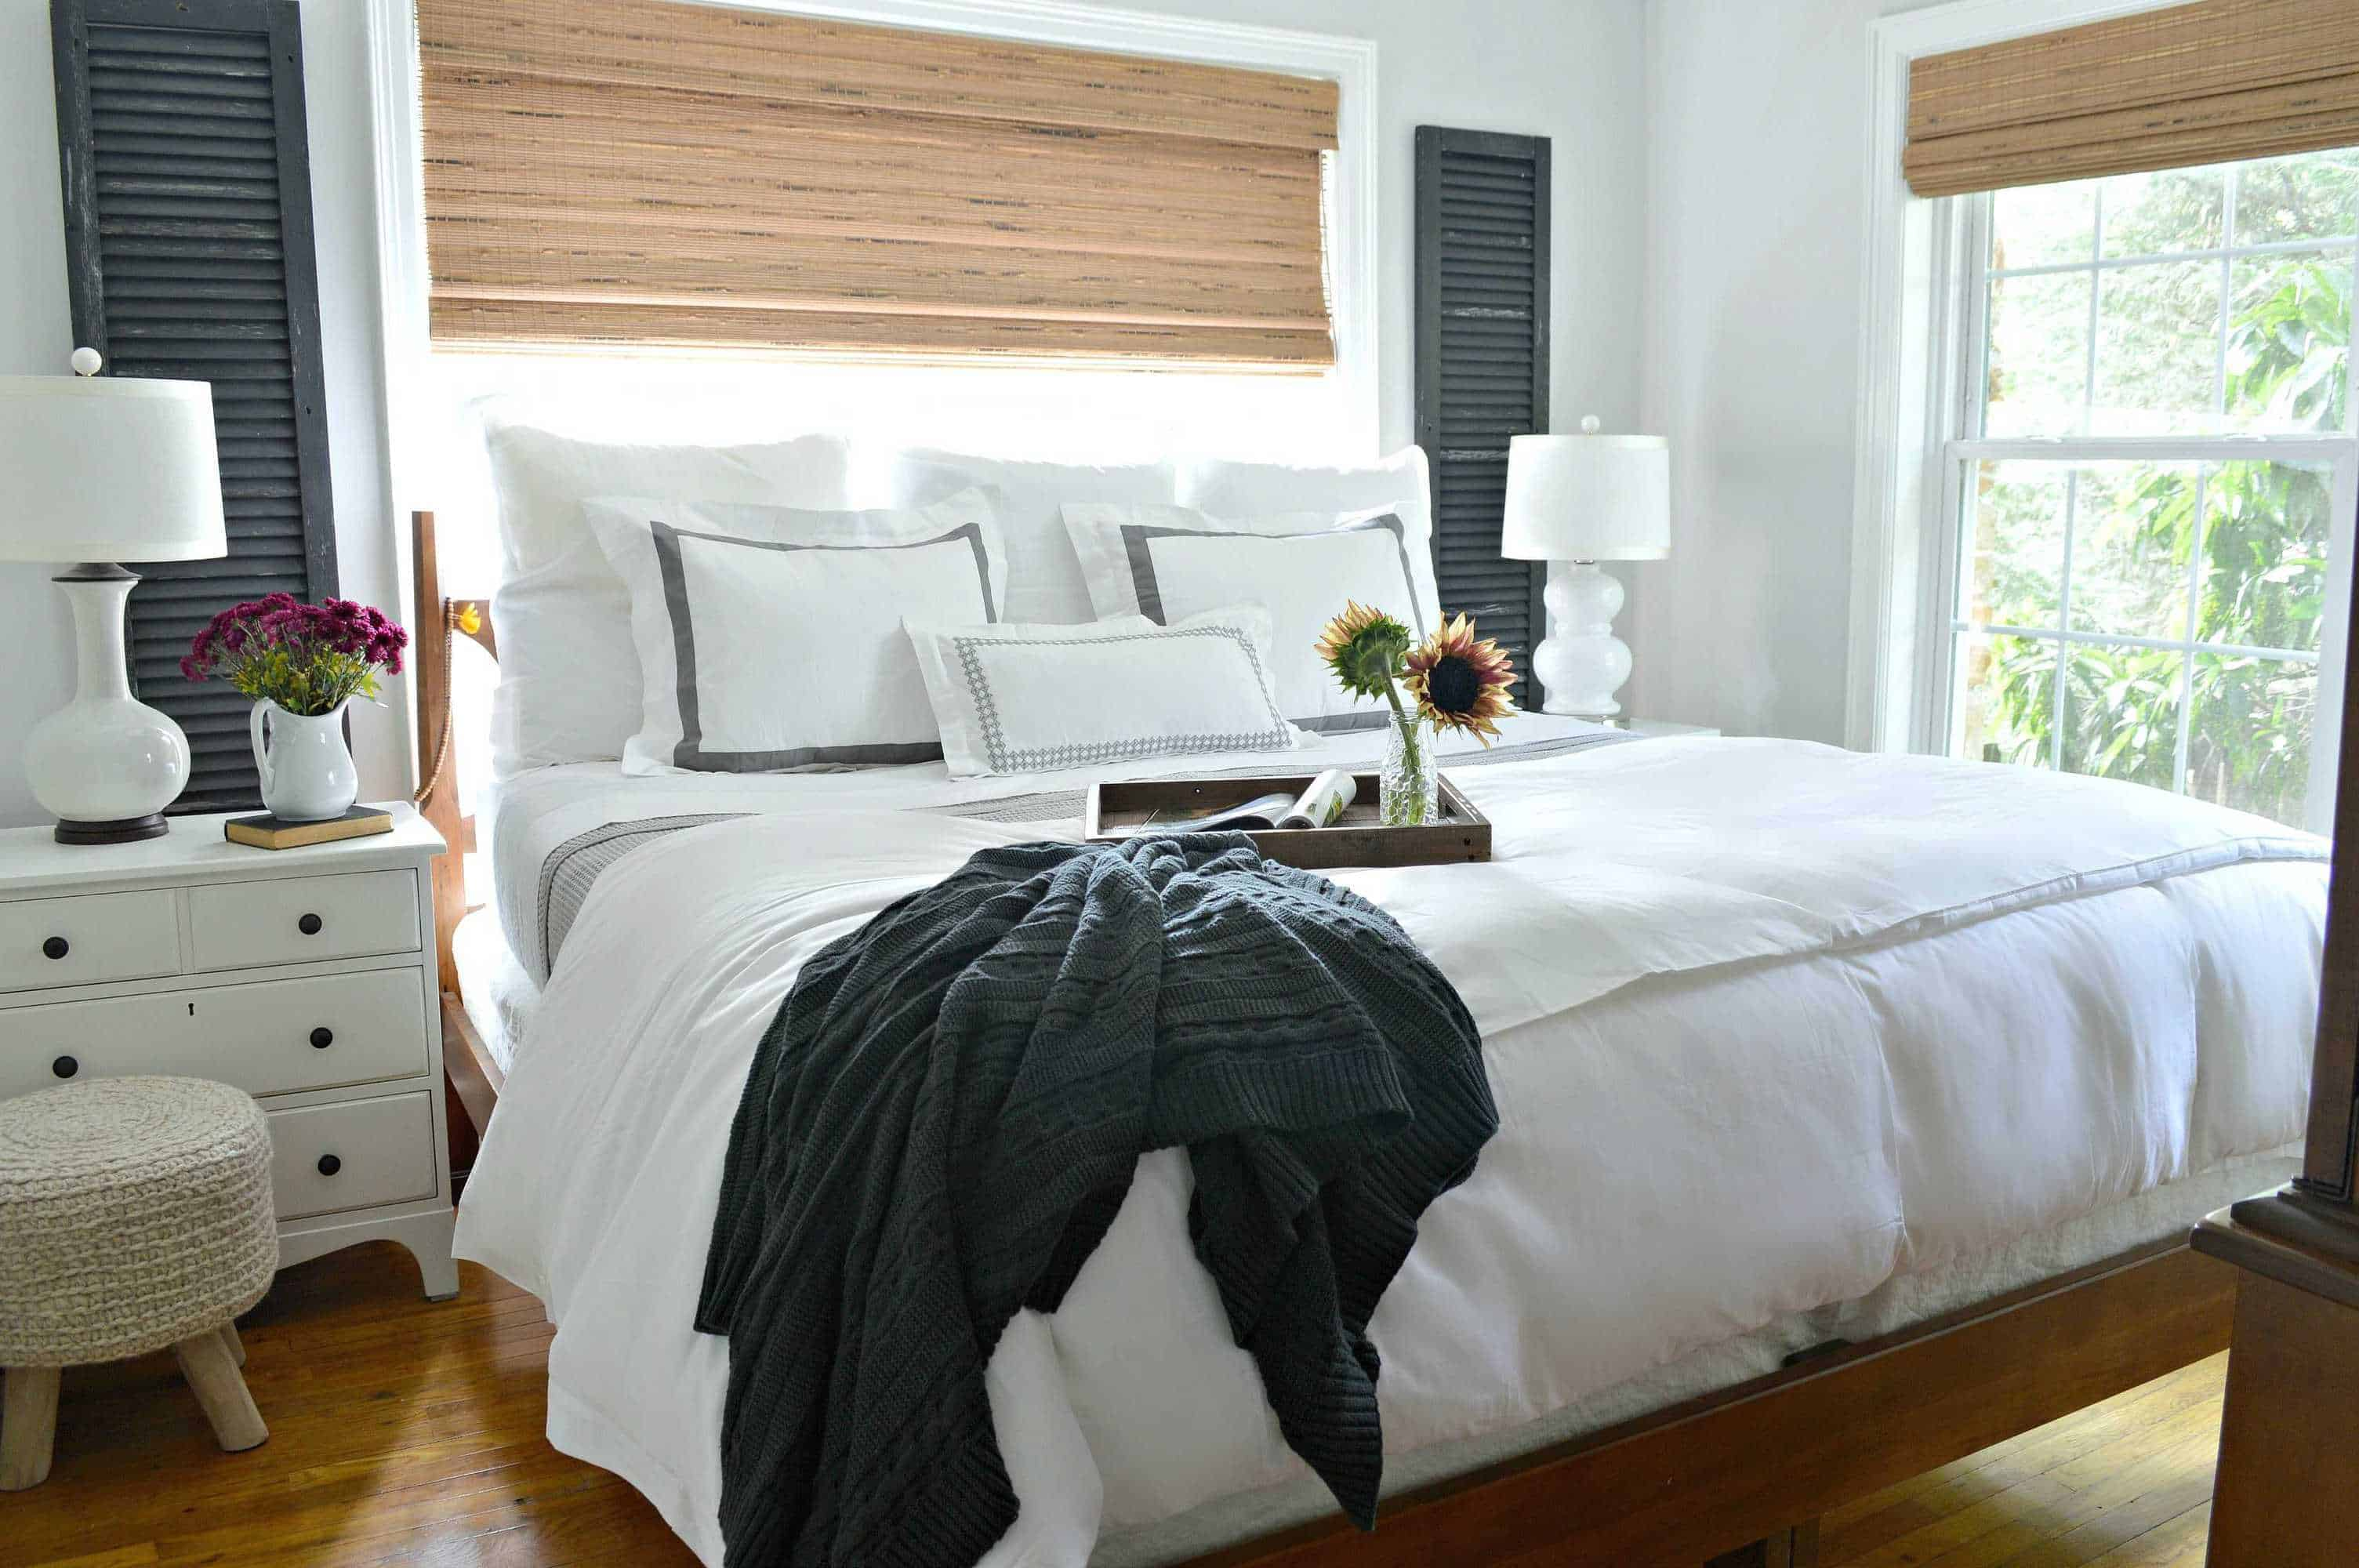 5 tips and tricks for creating a cozy and comfortable master bedroom for fall.